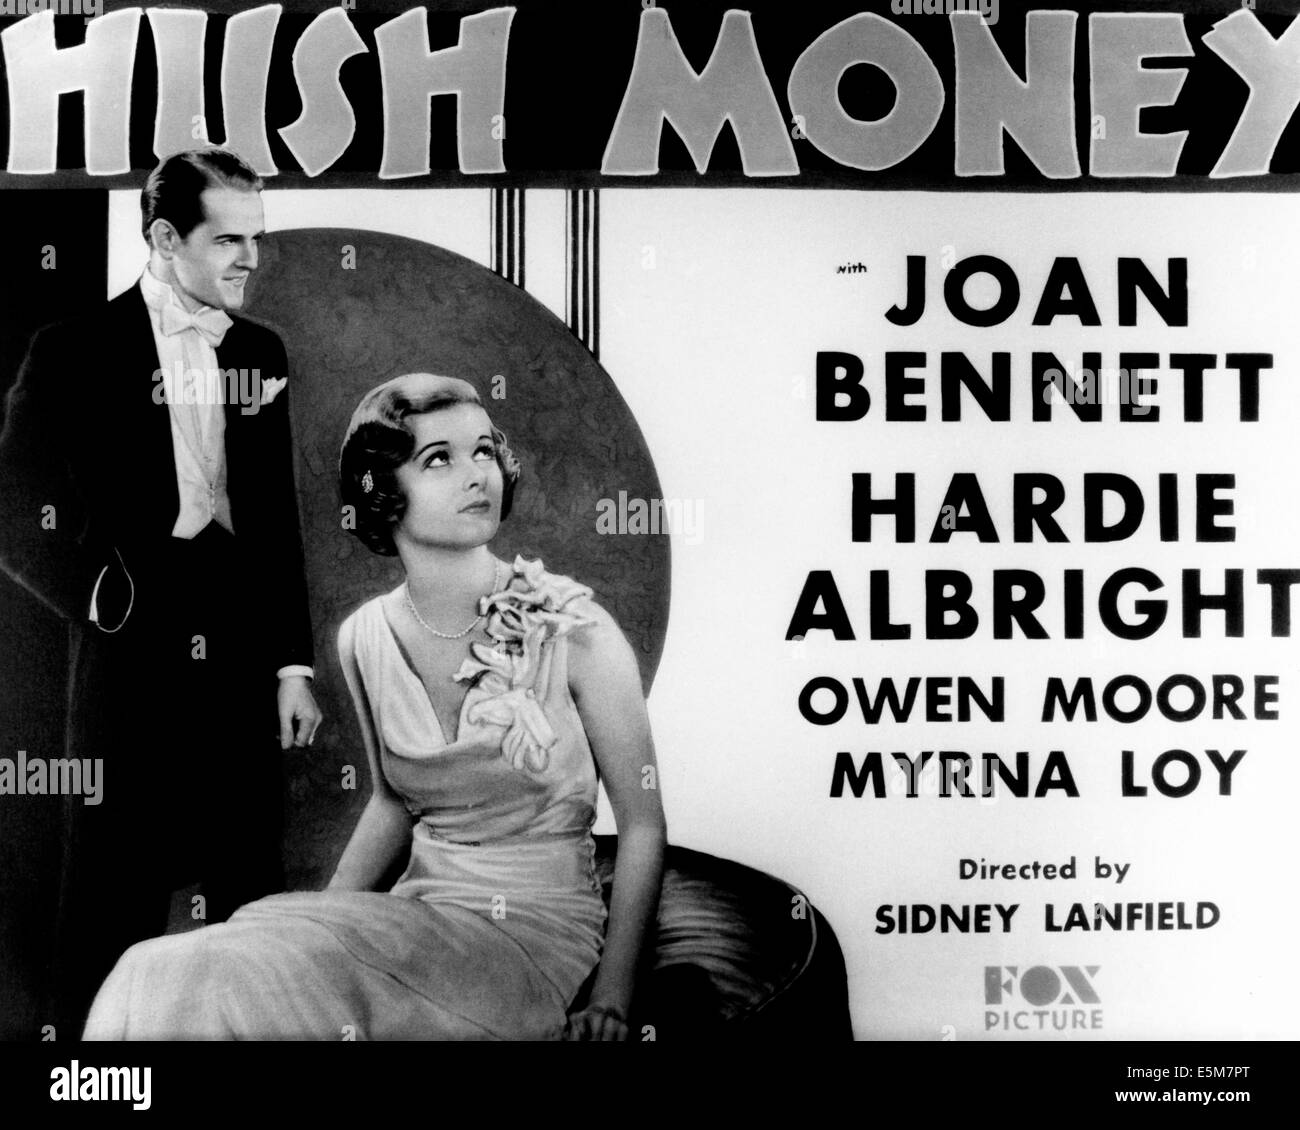 HUSH MONEY, from left: Hardie Albright, Joan Bennett, 1931, TM & Copyright © 20th Century Fox Film Corp./courtesy - Stock Image